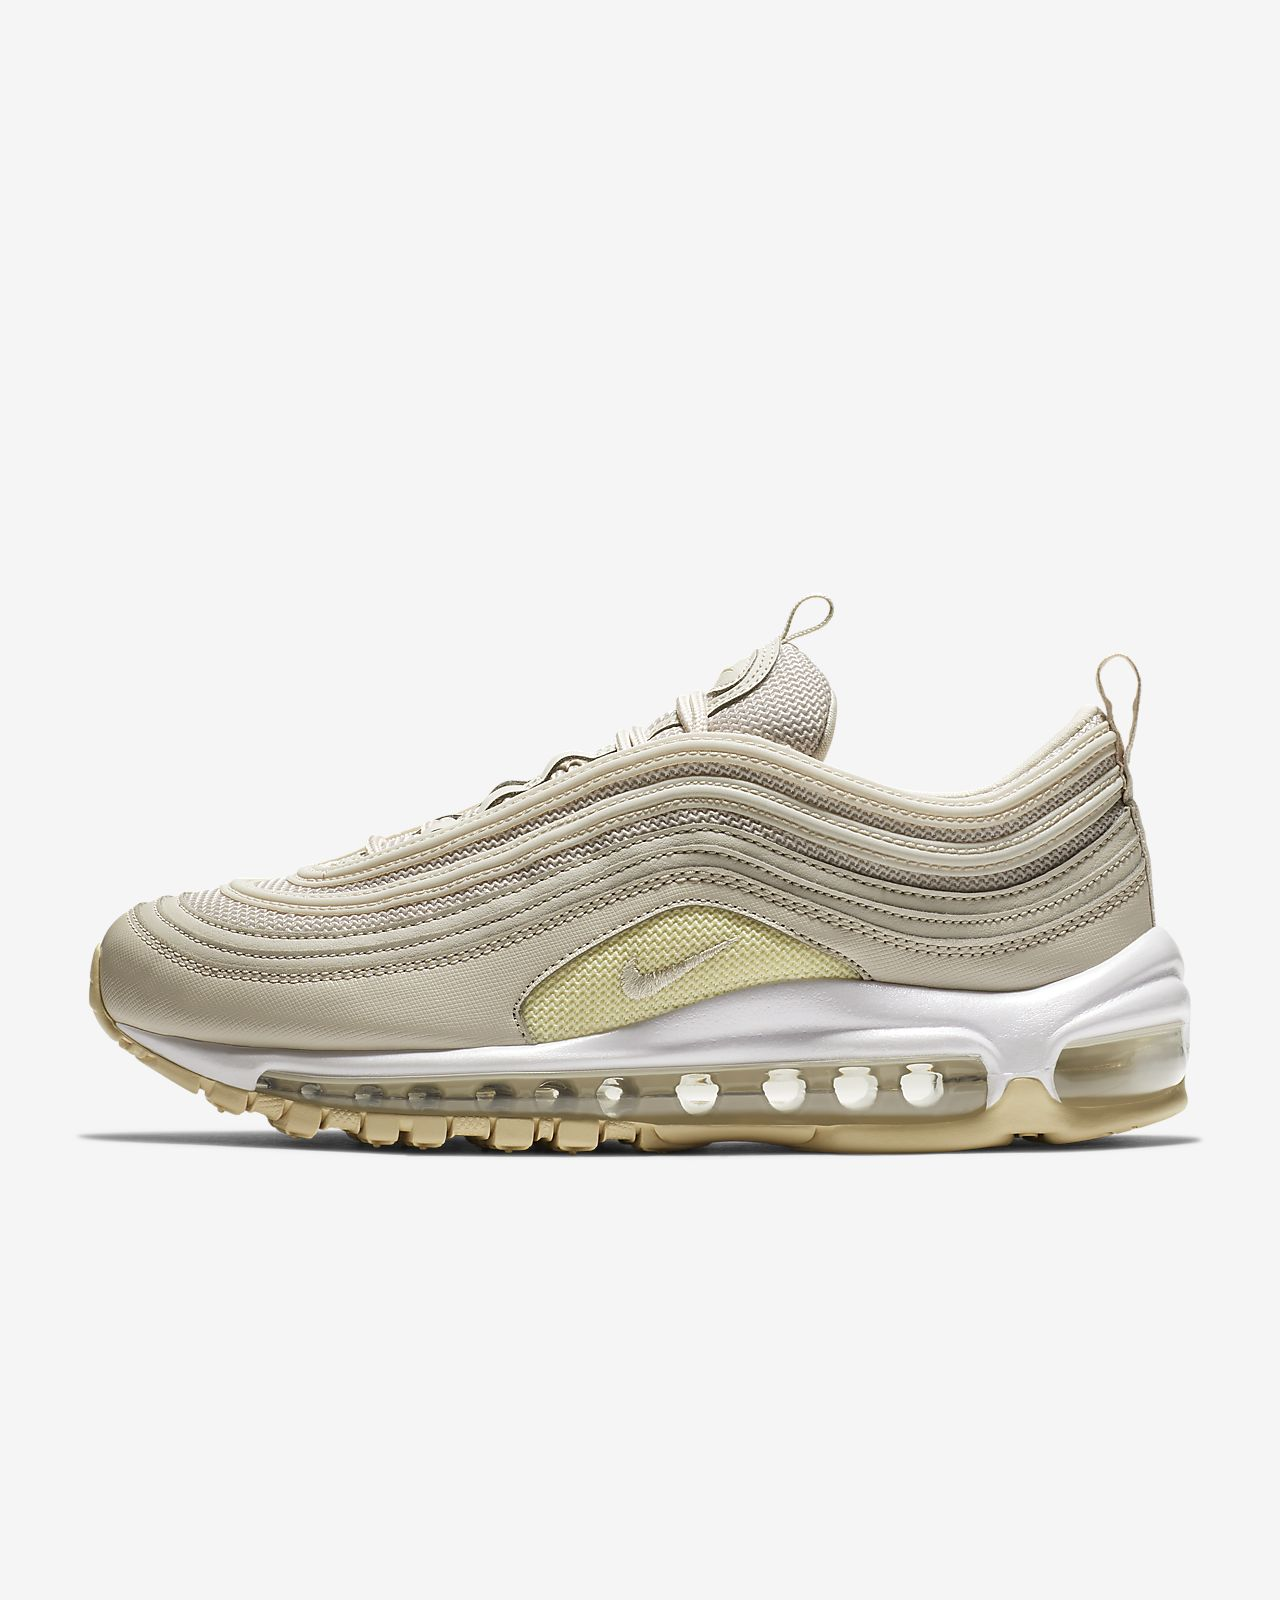 sports shoes bef23 2557d where can i buy nike air max 97 mujeres oro gris 13fce ca57c